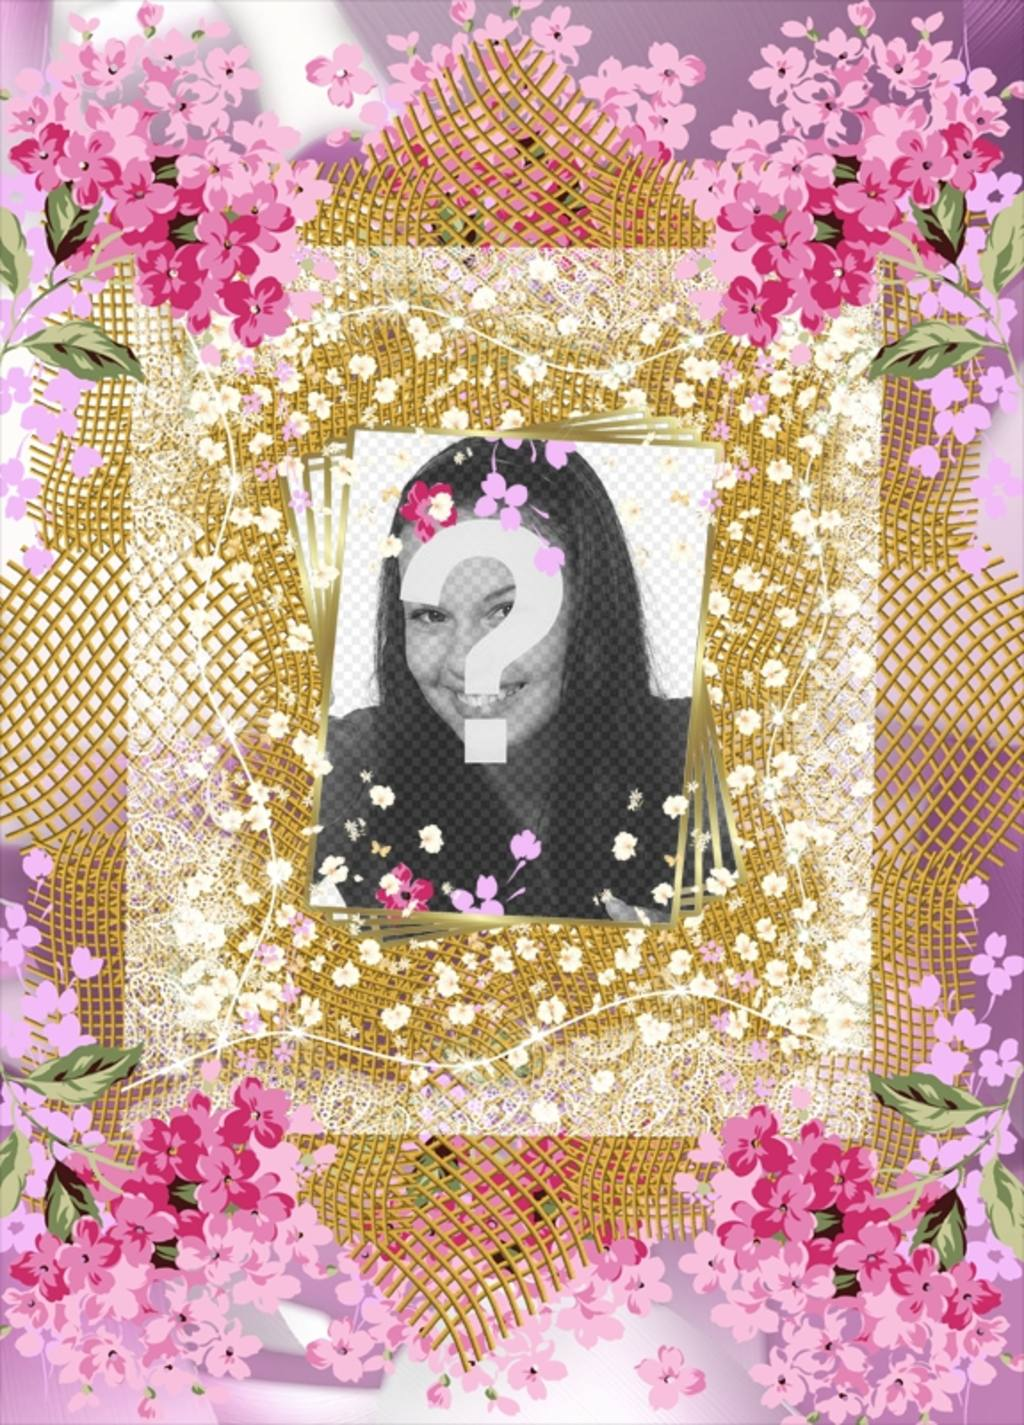 Frame with many flowers to decorate your photos online